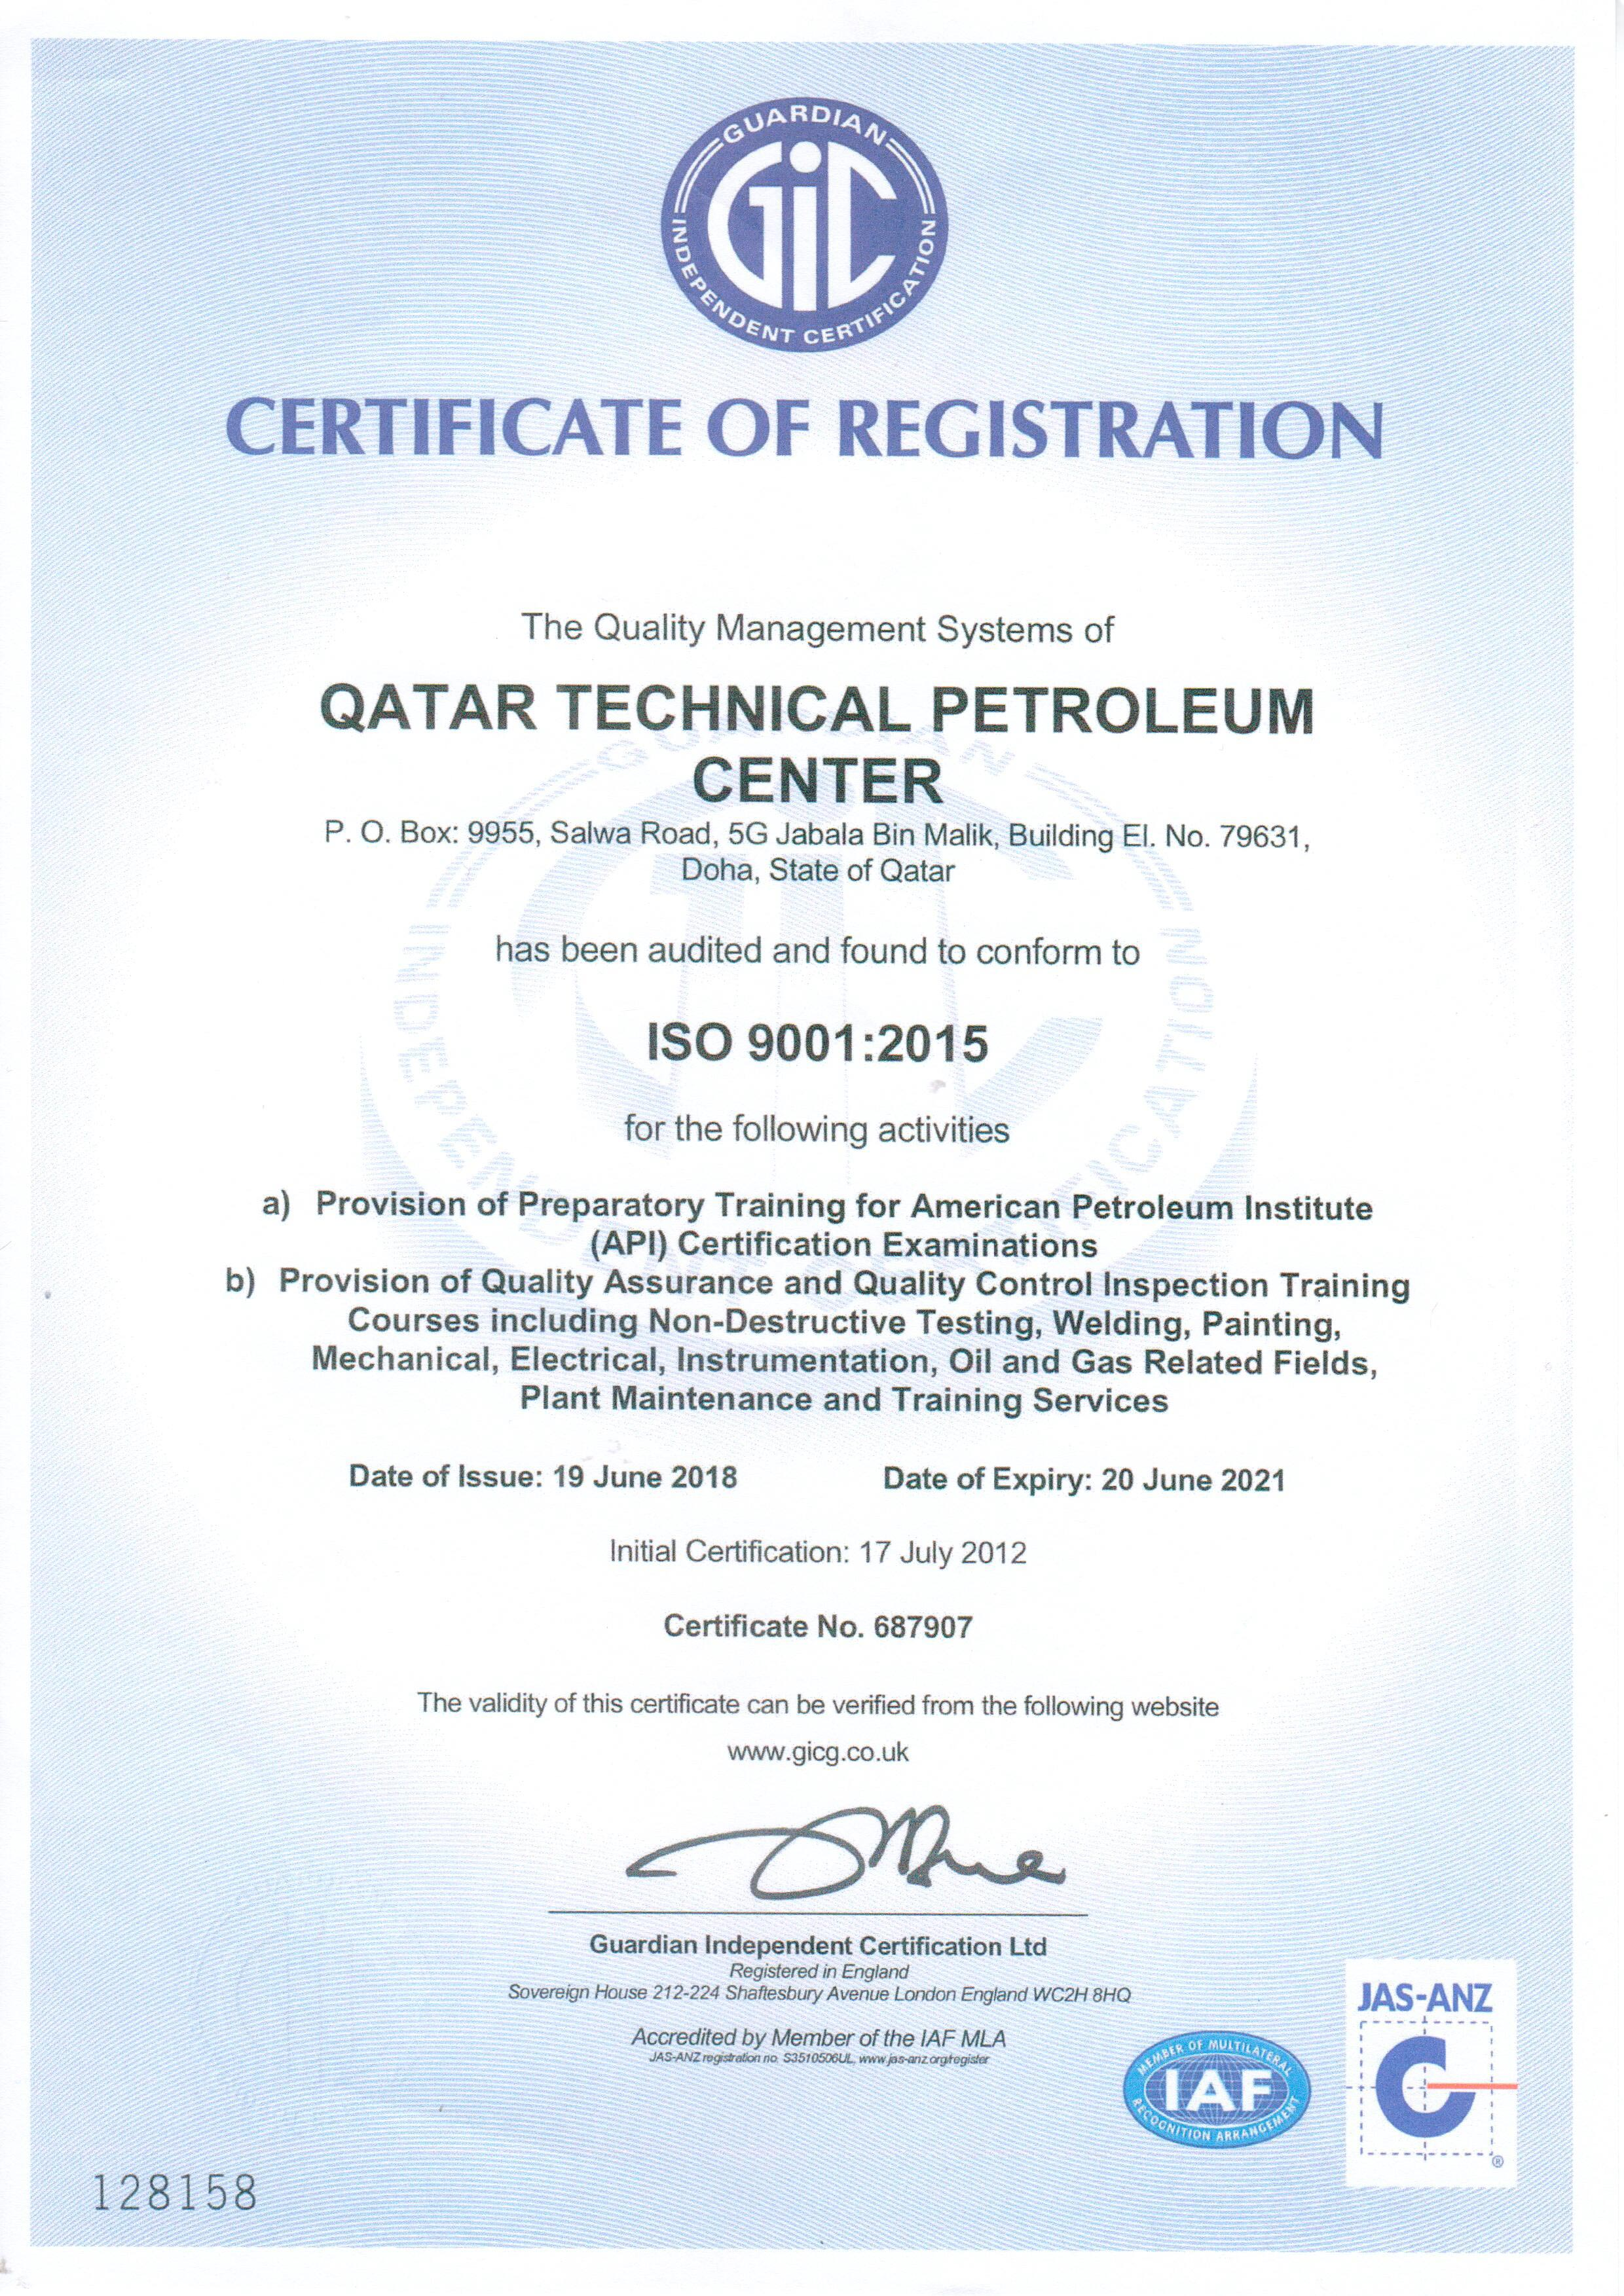 Qatar Technical Petroleum Center Qtpc Qatar Technical Petroleum